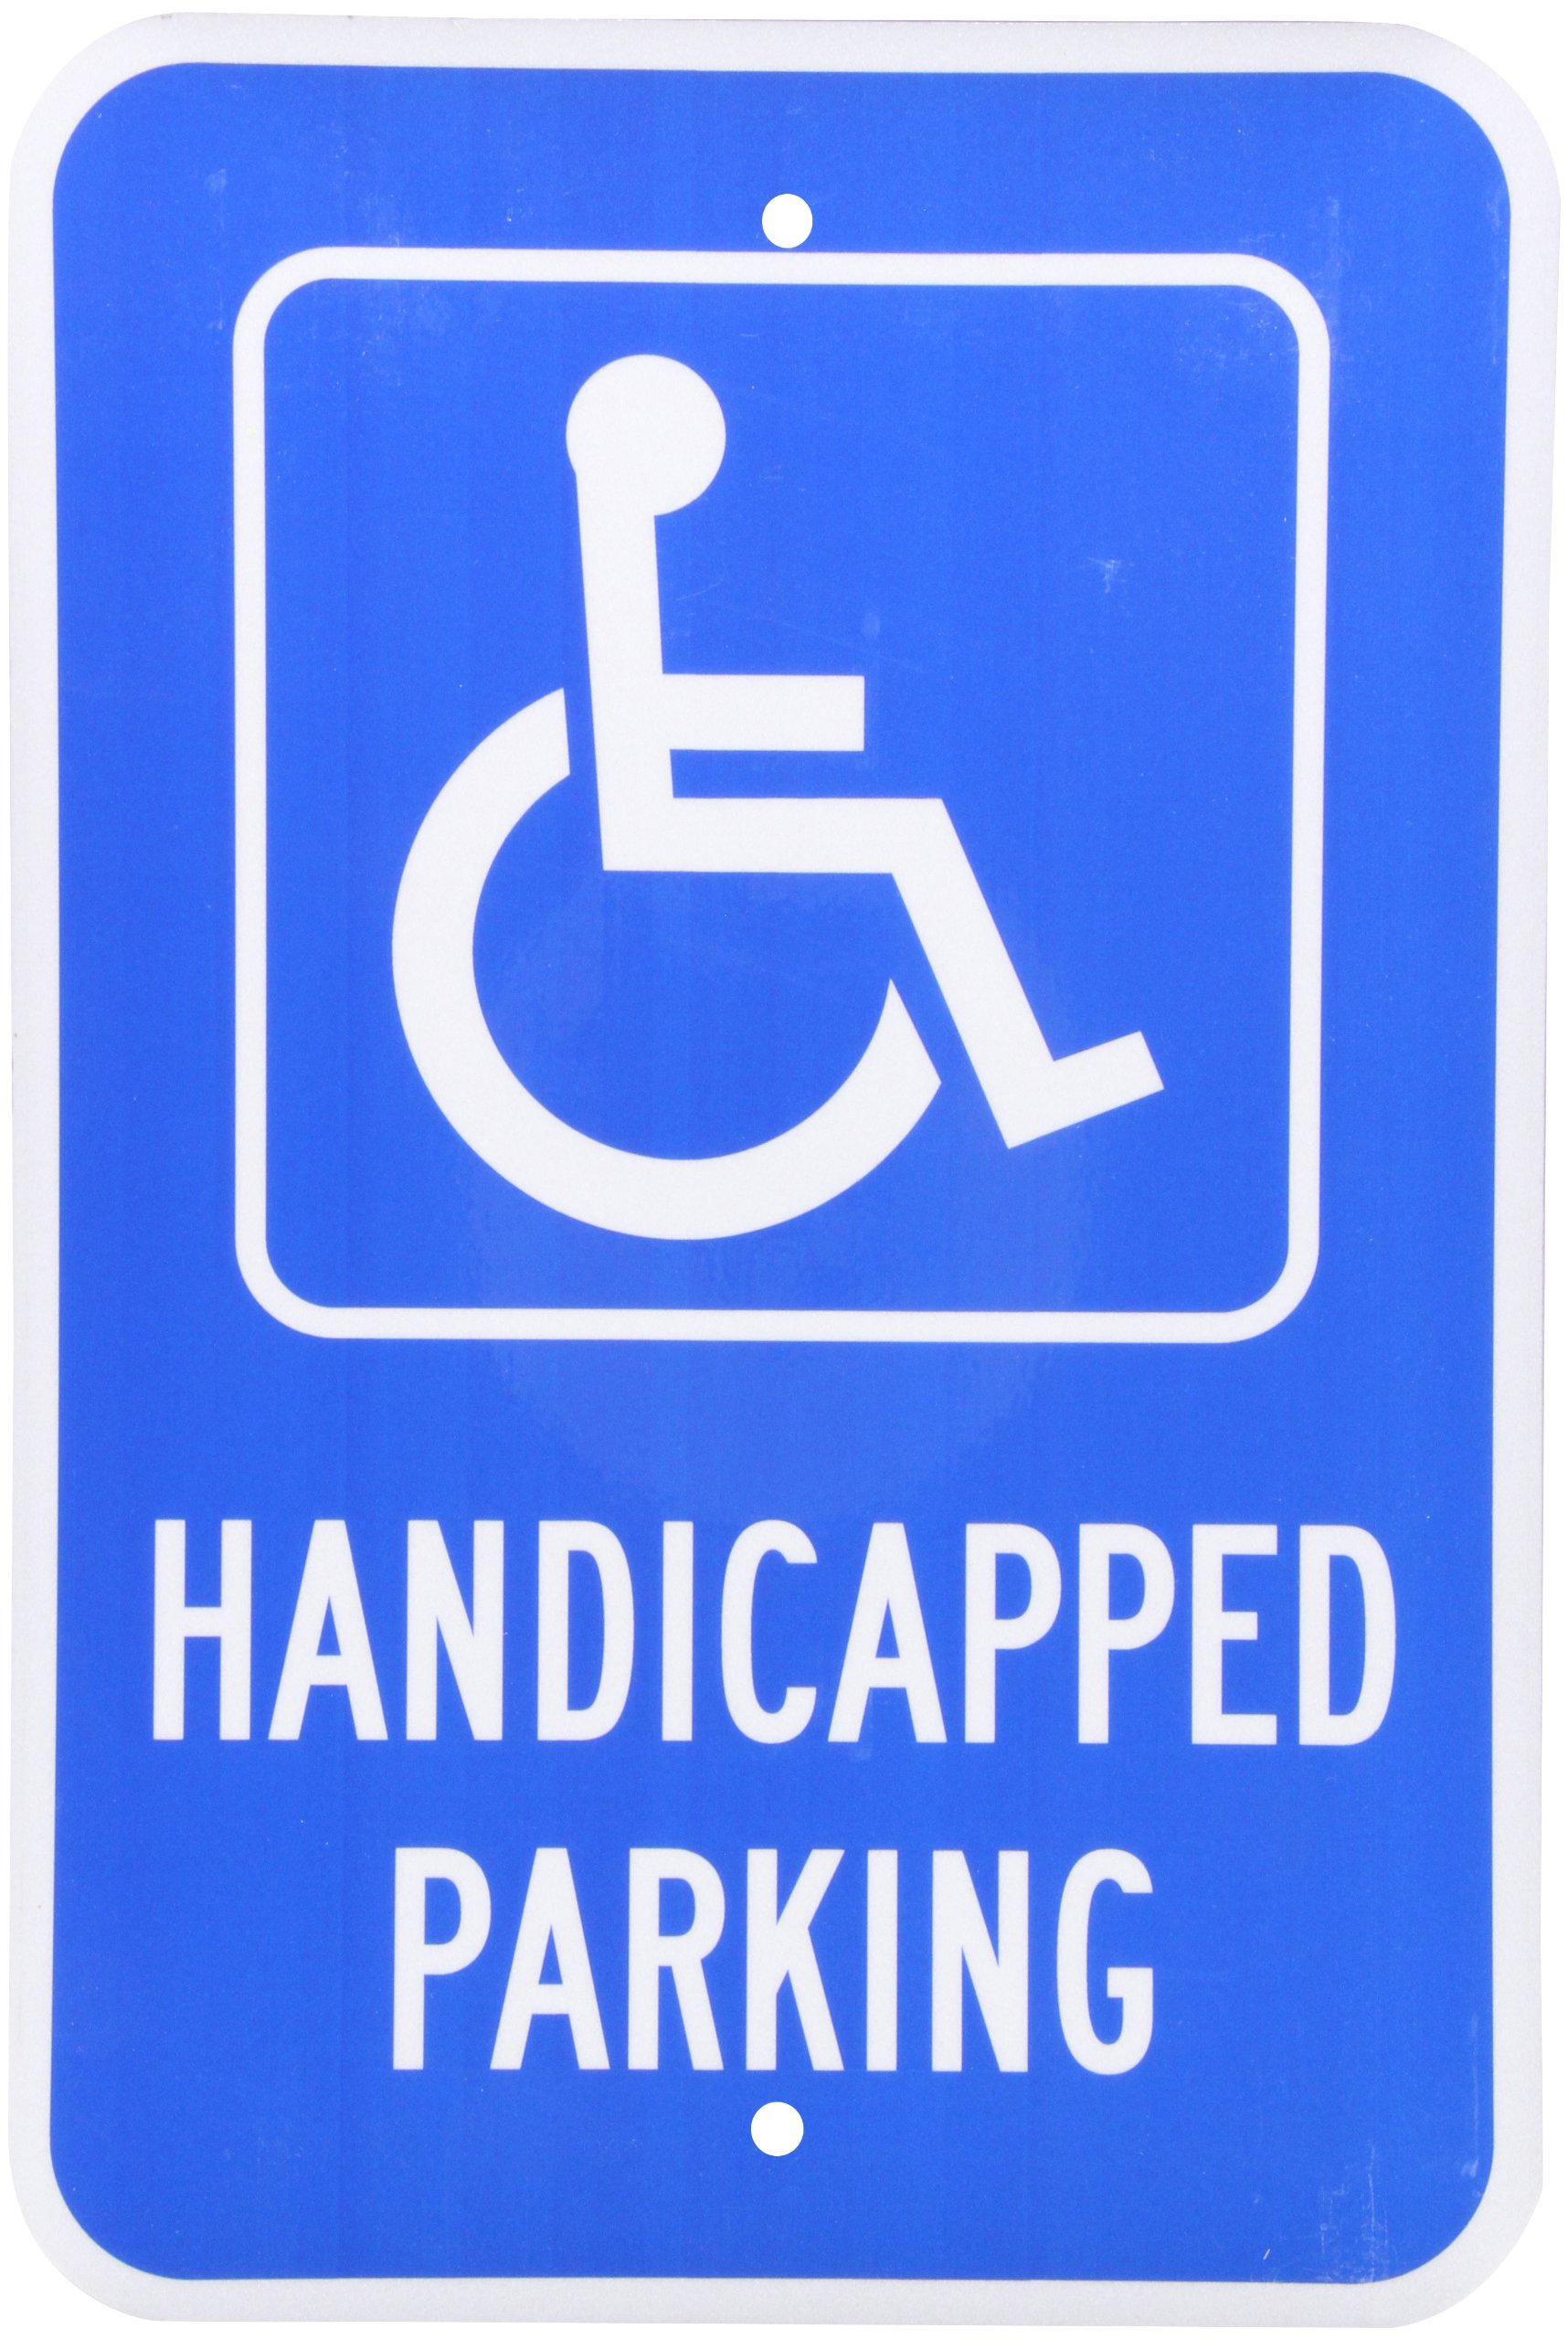 SmartSign 3M Engineer Grade Reflective Sign, Legend ''Handicapped Parking'' with Graphic, 18'' high x 12'' wide, White on Blue